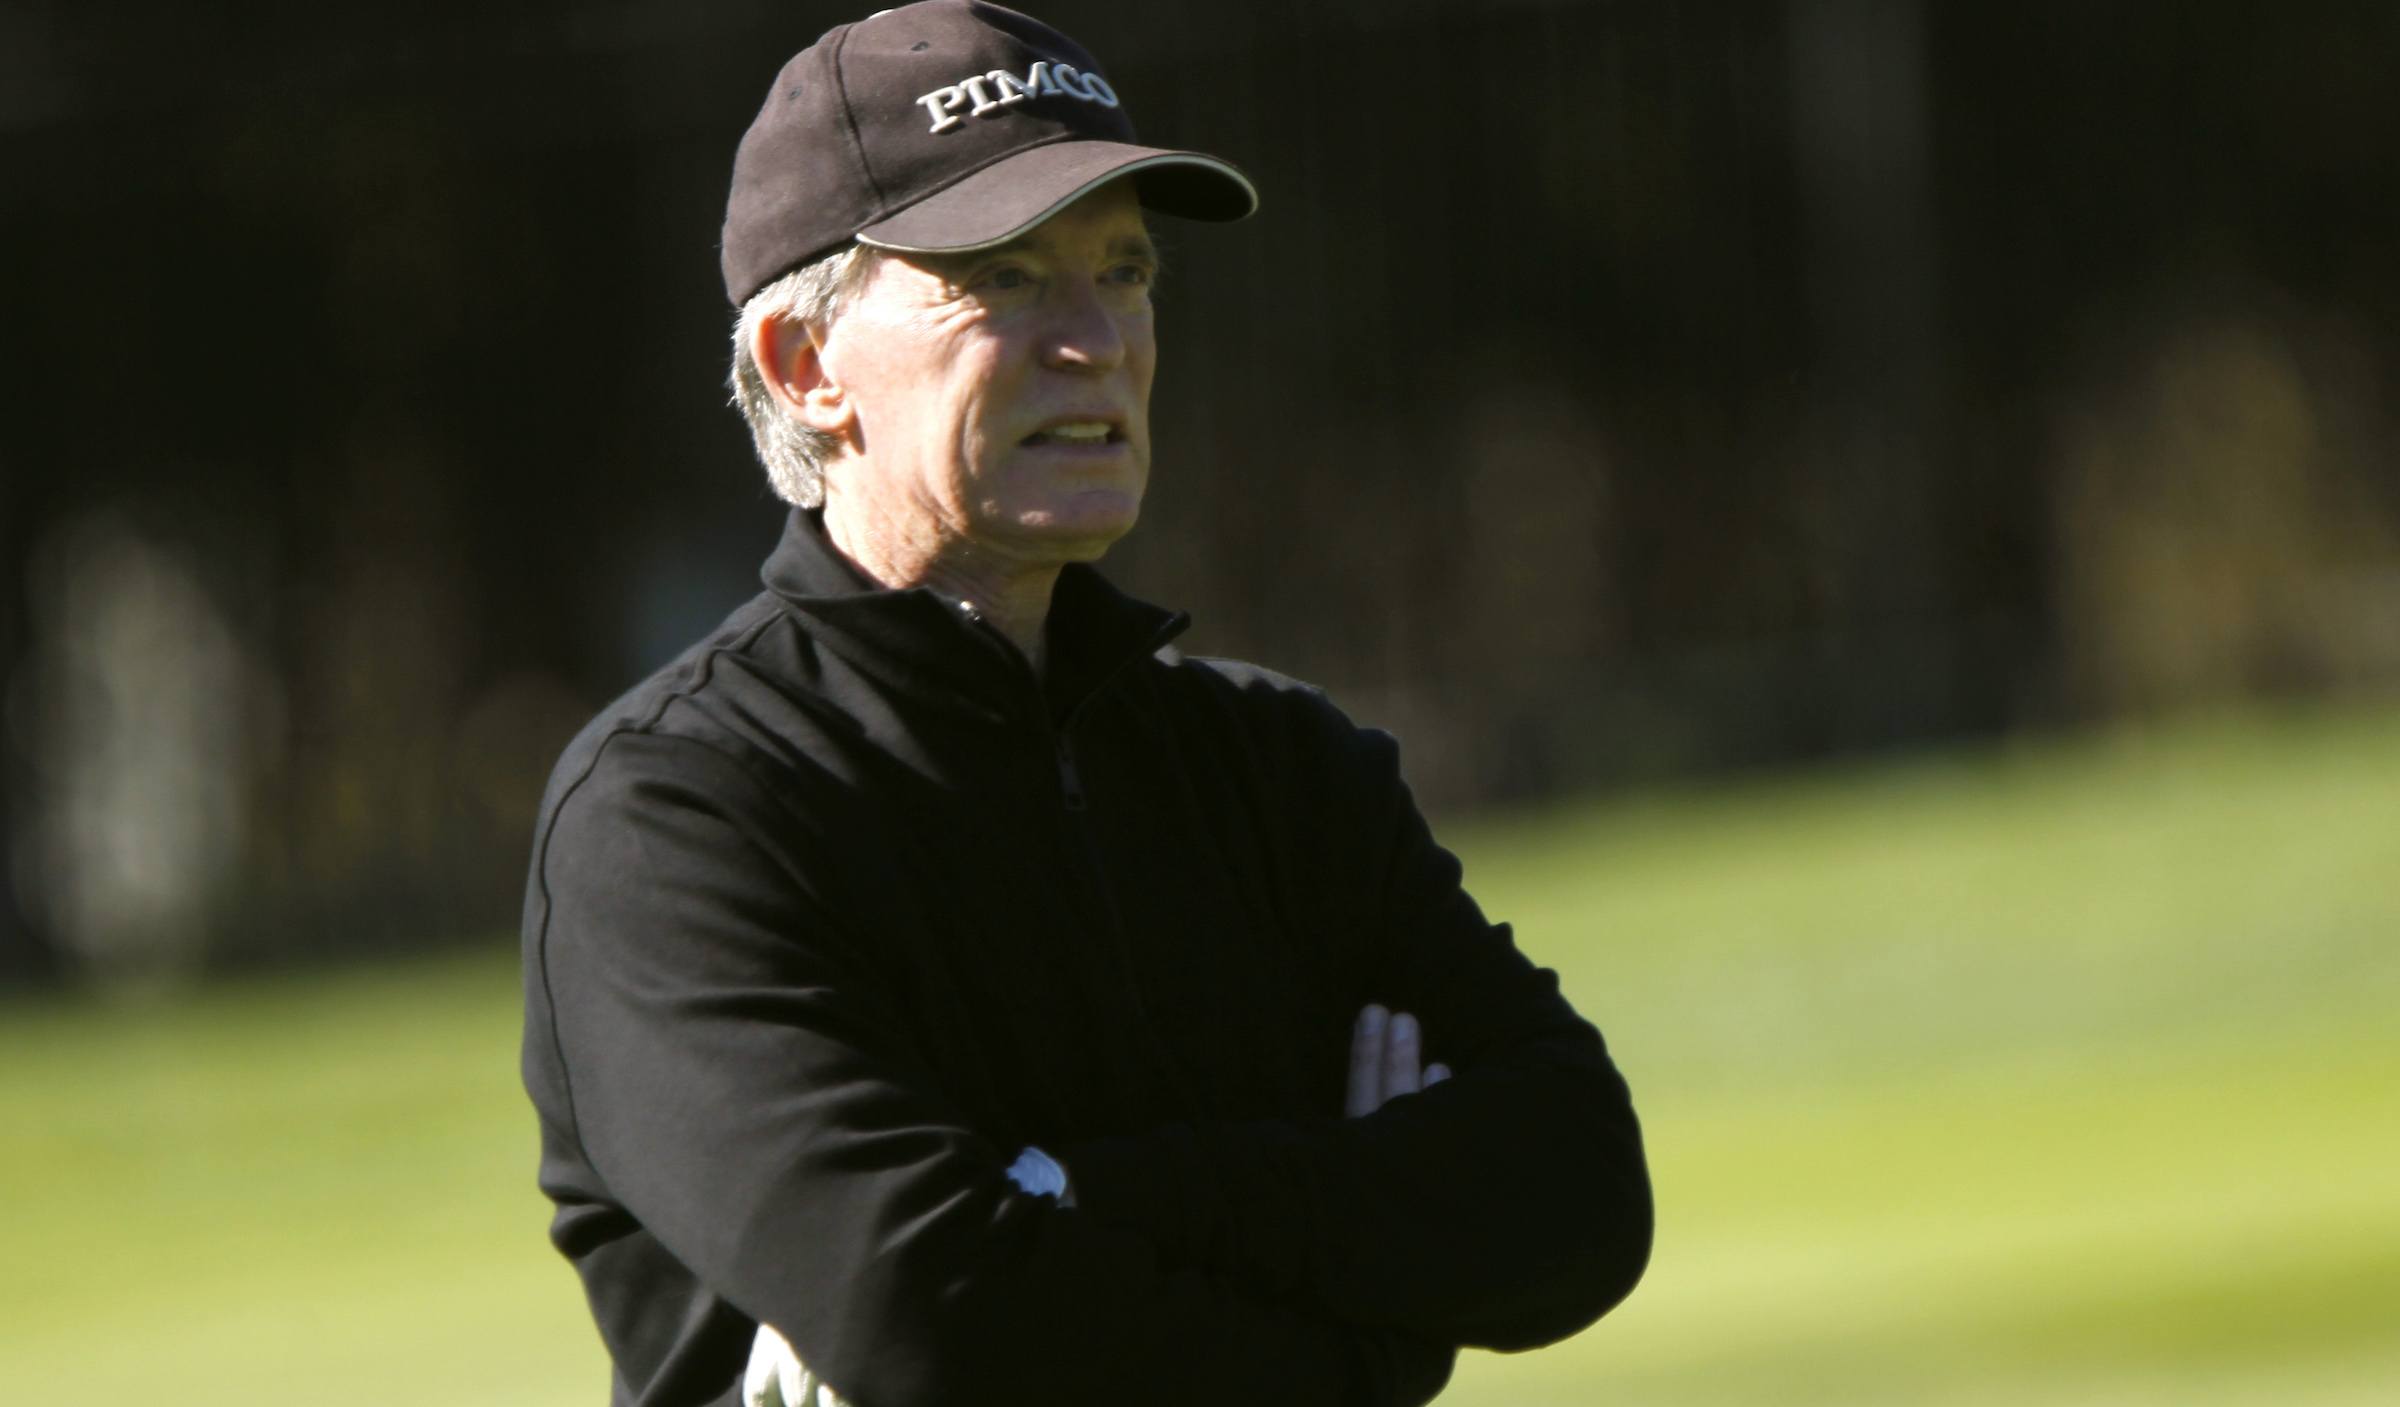 Pacific Investment Management (PIMCO) founder and co-chief investment officer Bill Gross plays golf on the first hole at Pebble Beach Golf Links before the start of the AT&T Pebble Beach Pro-Am in Pebble Beach, California, February 8, 2012. REUTERS/Robert Galbraith  (UNITED STATES - Tags: SPORT GOLF BUSINESS) - RTR2XIIS